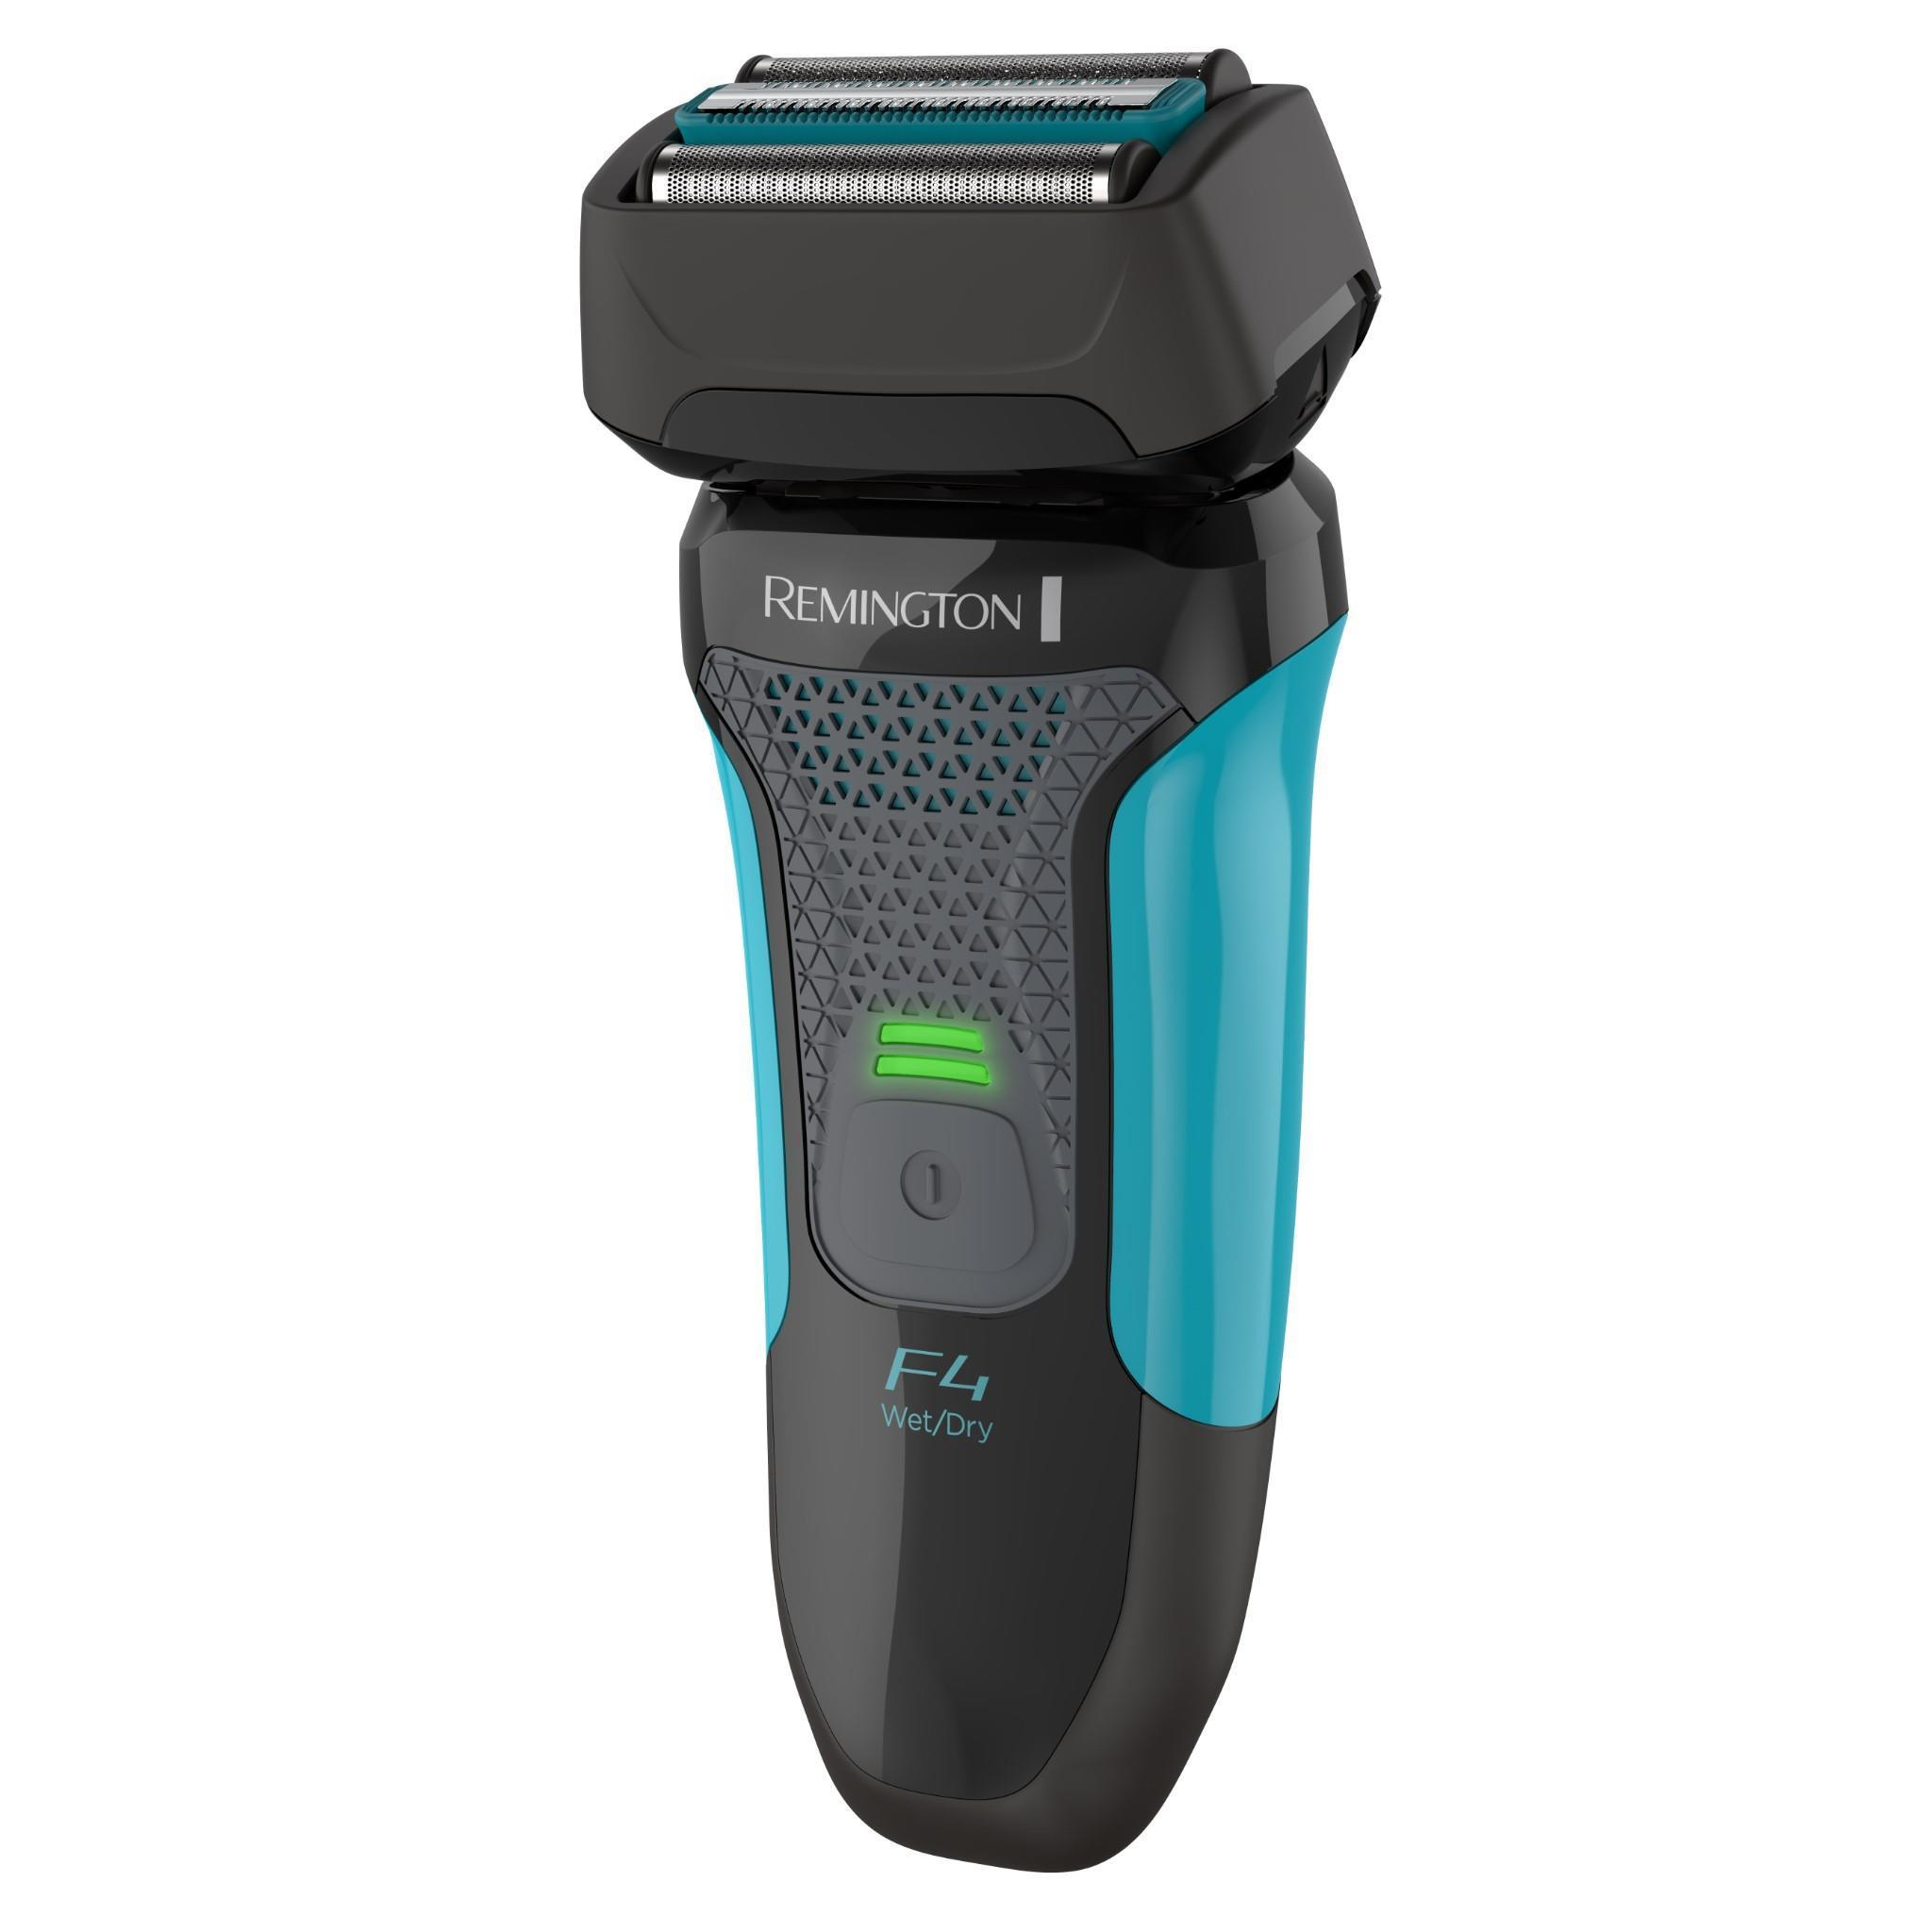 Remington Style Series F4 Foil Shaver